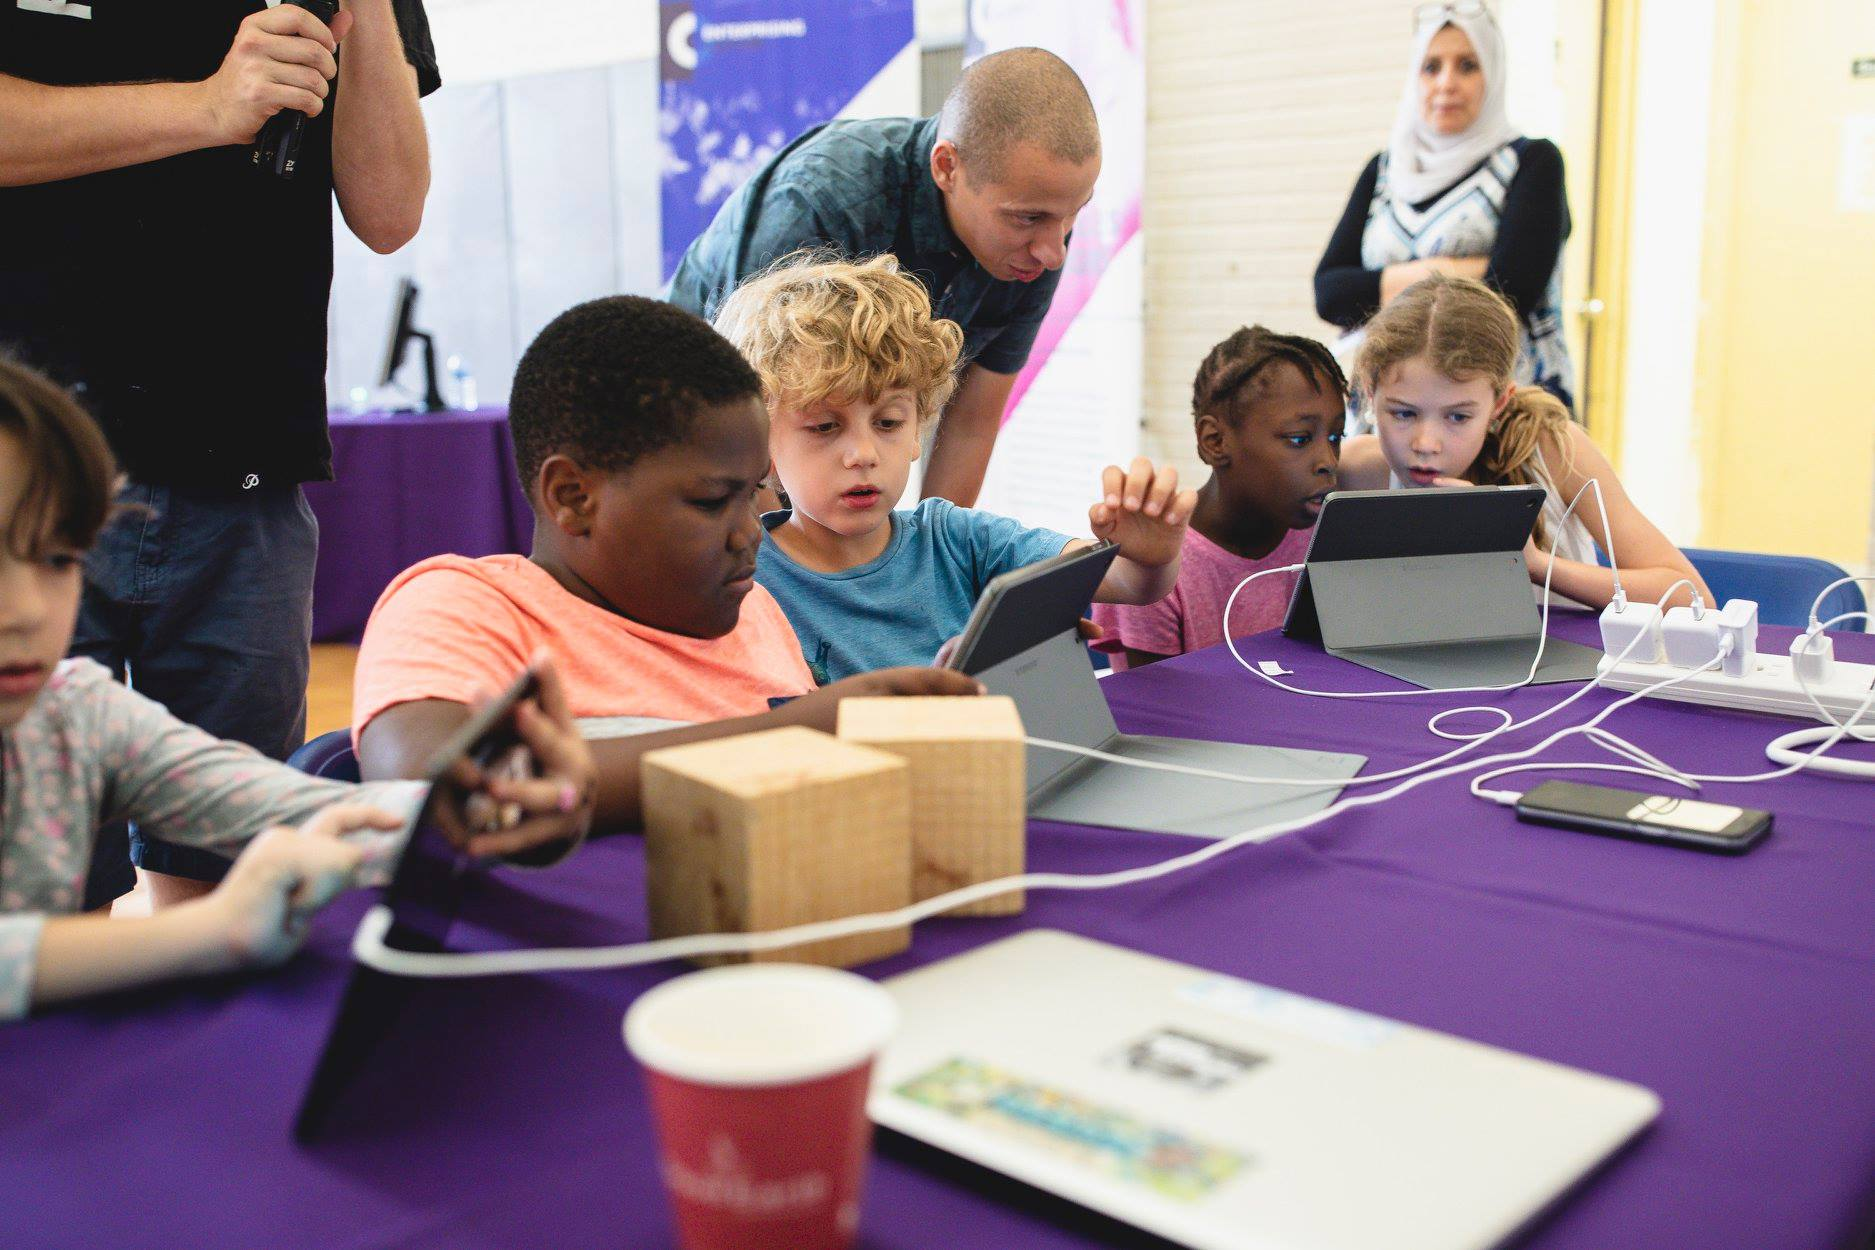 Two pairs of children sit at a purple table. Each pair is looking at a tablet in front of them. A man stands between the groups.